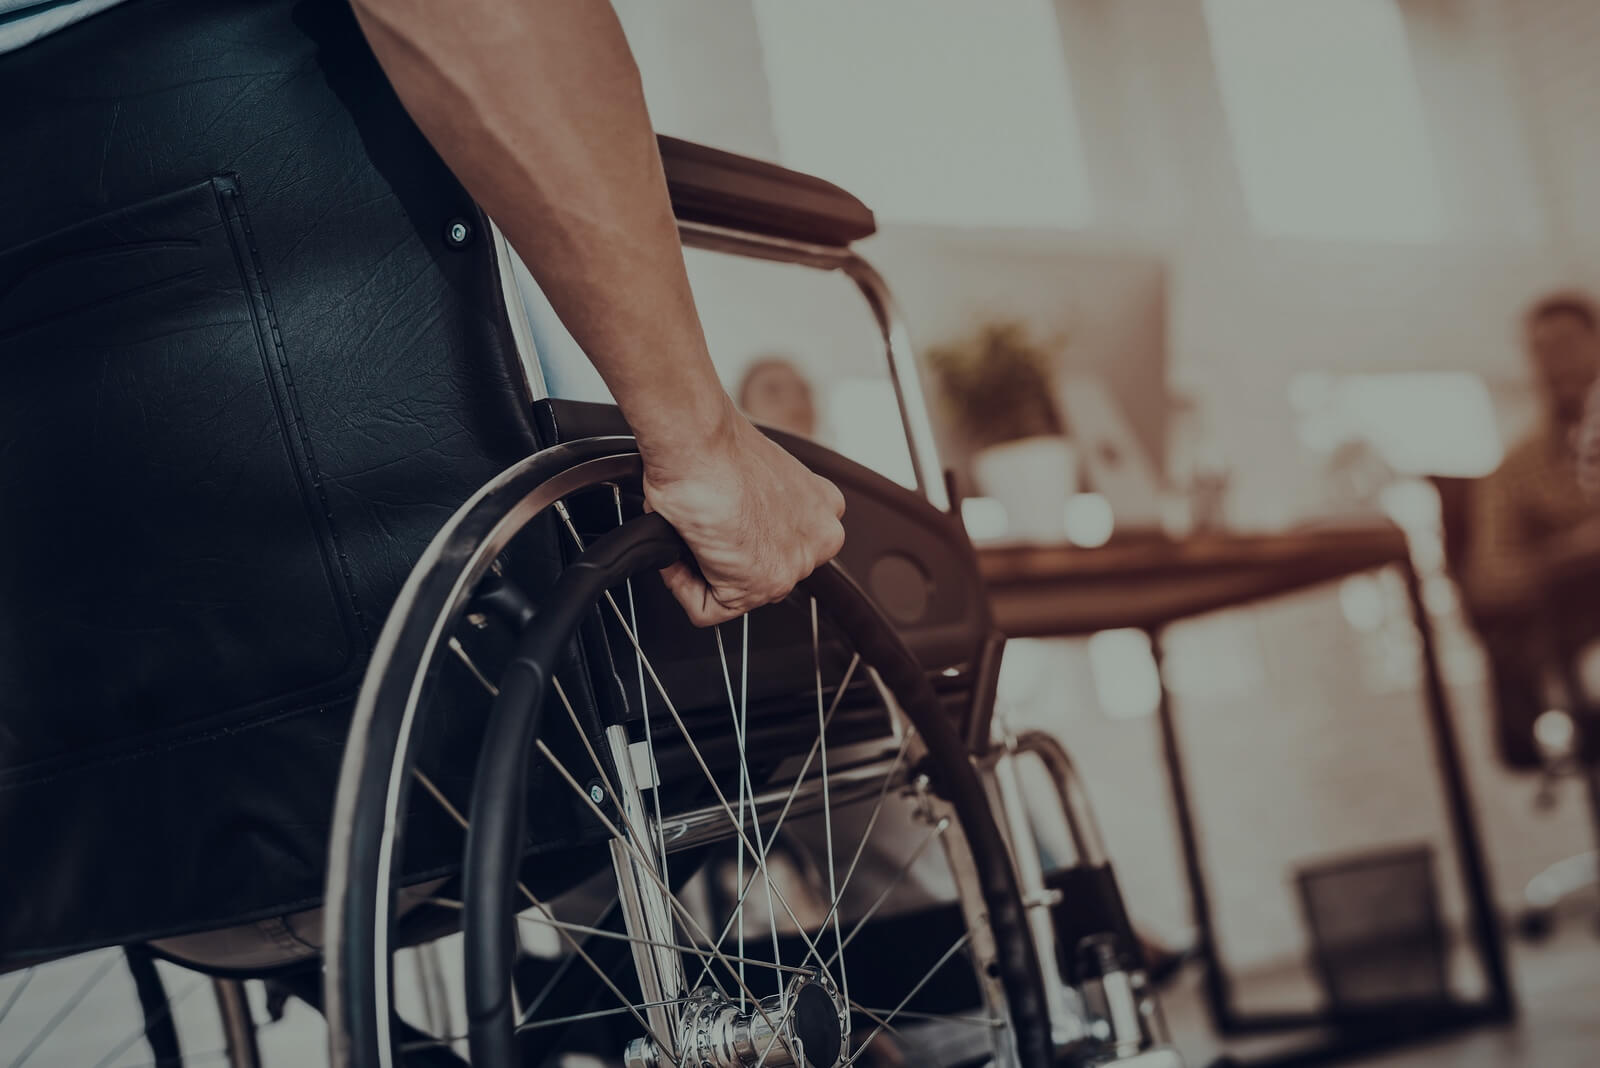 Main in wheelchair in office setting